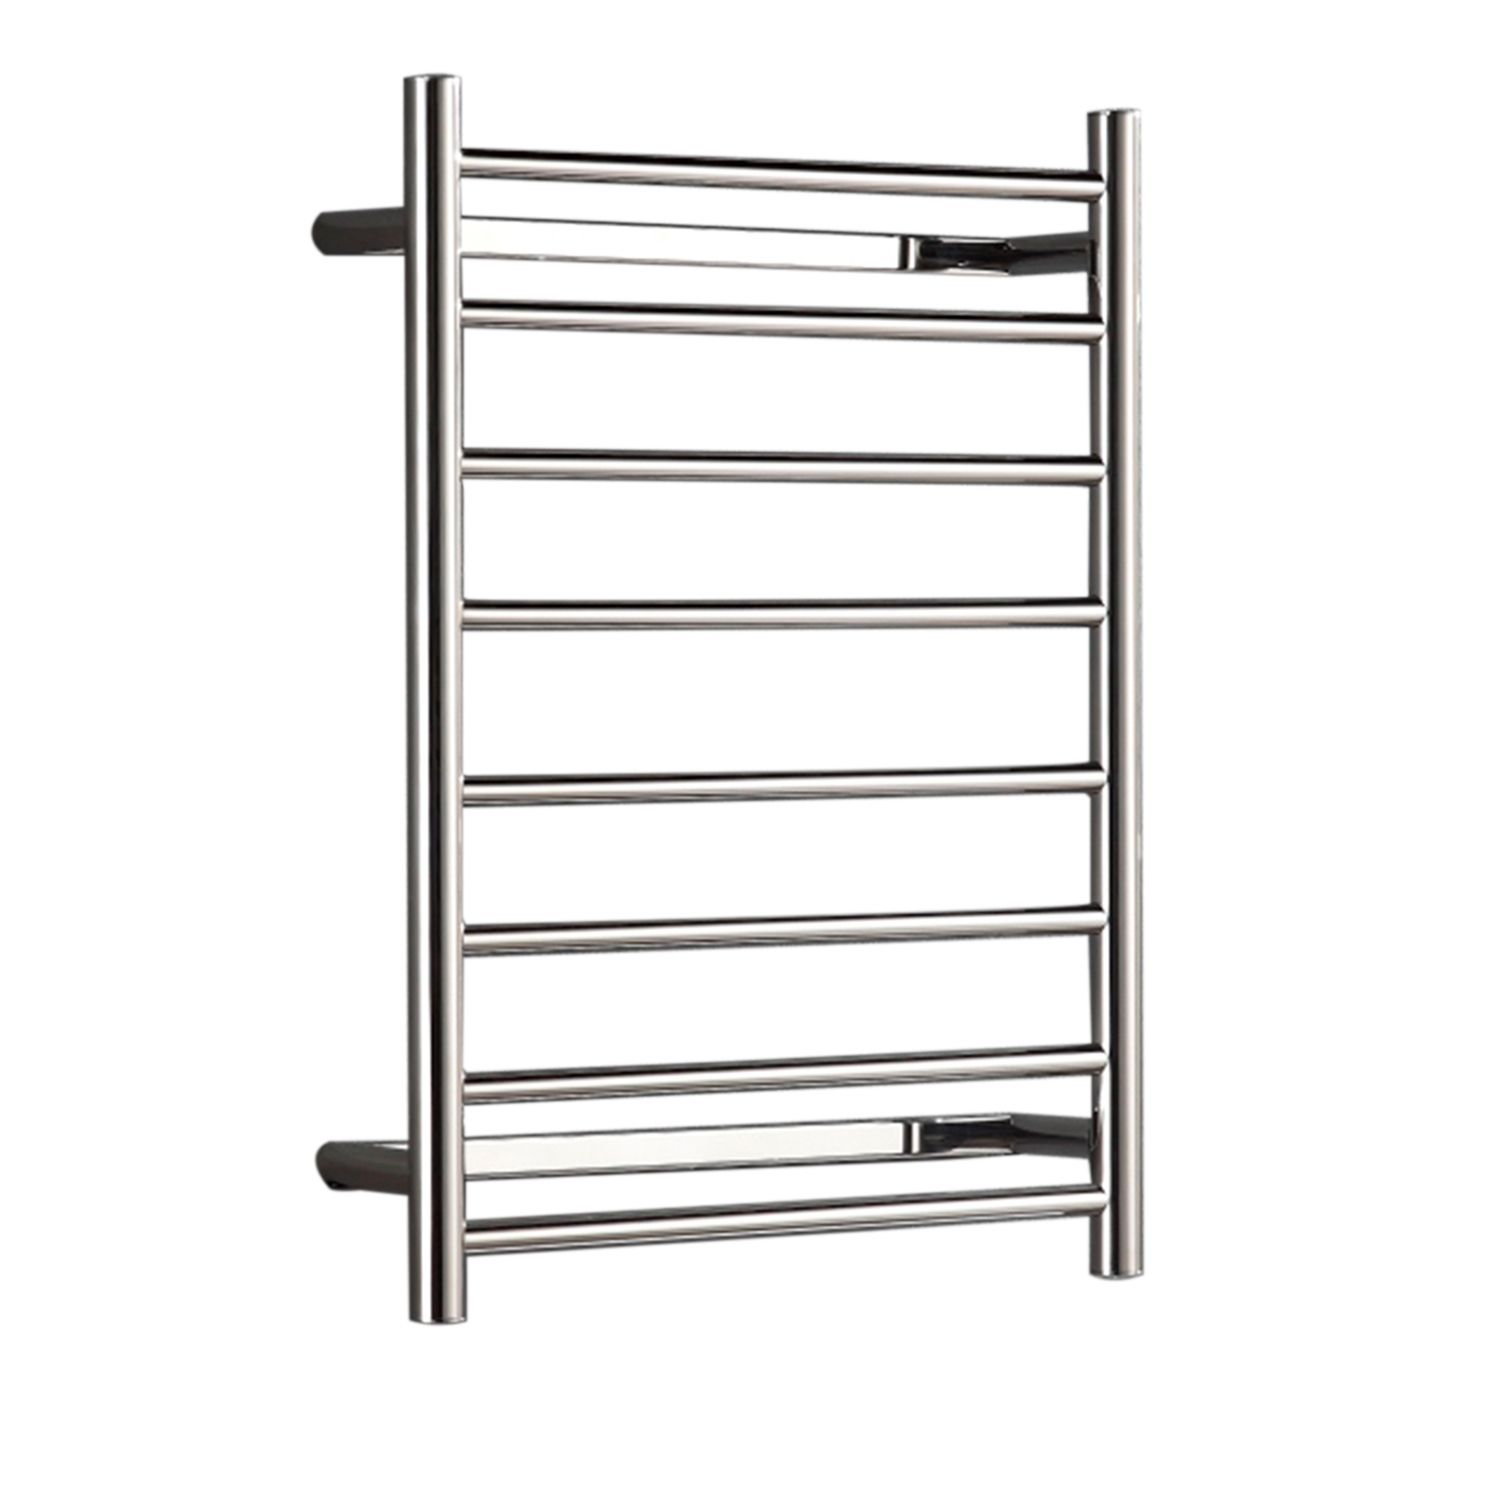 Hotwire - Heated Towel Rail - Round Bar (W530mm x H700mm)